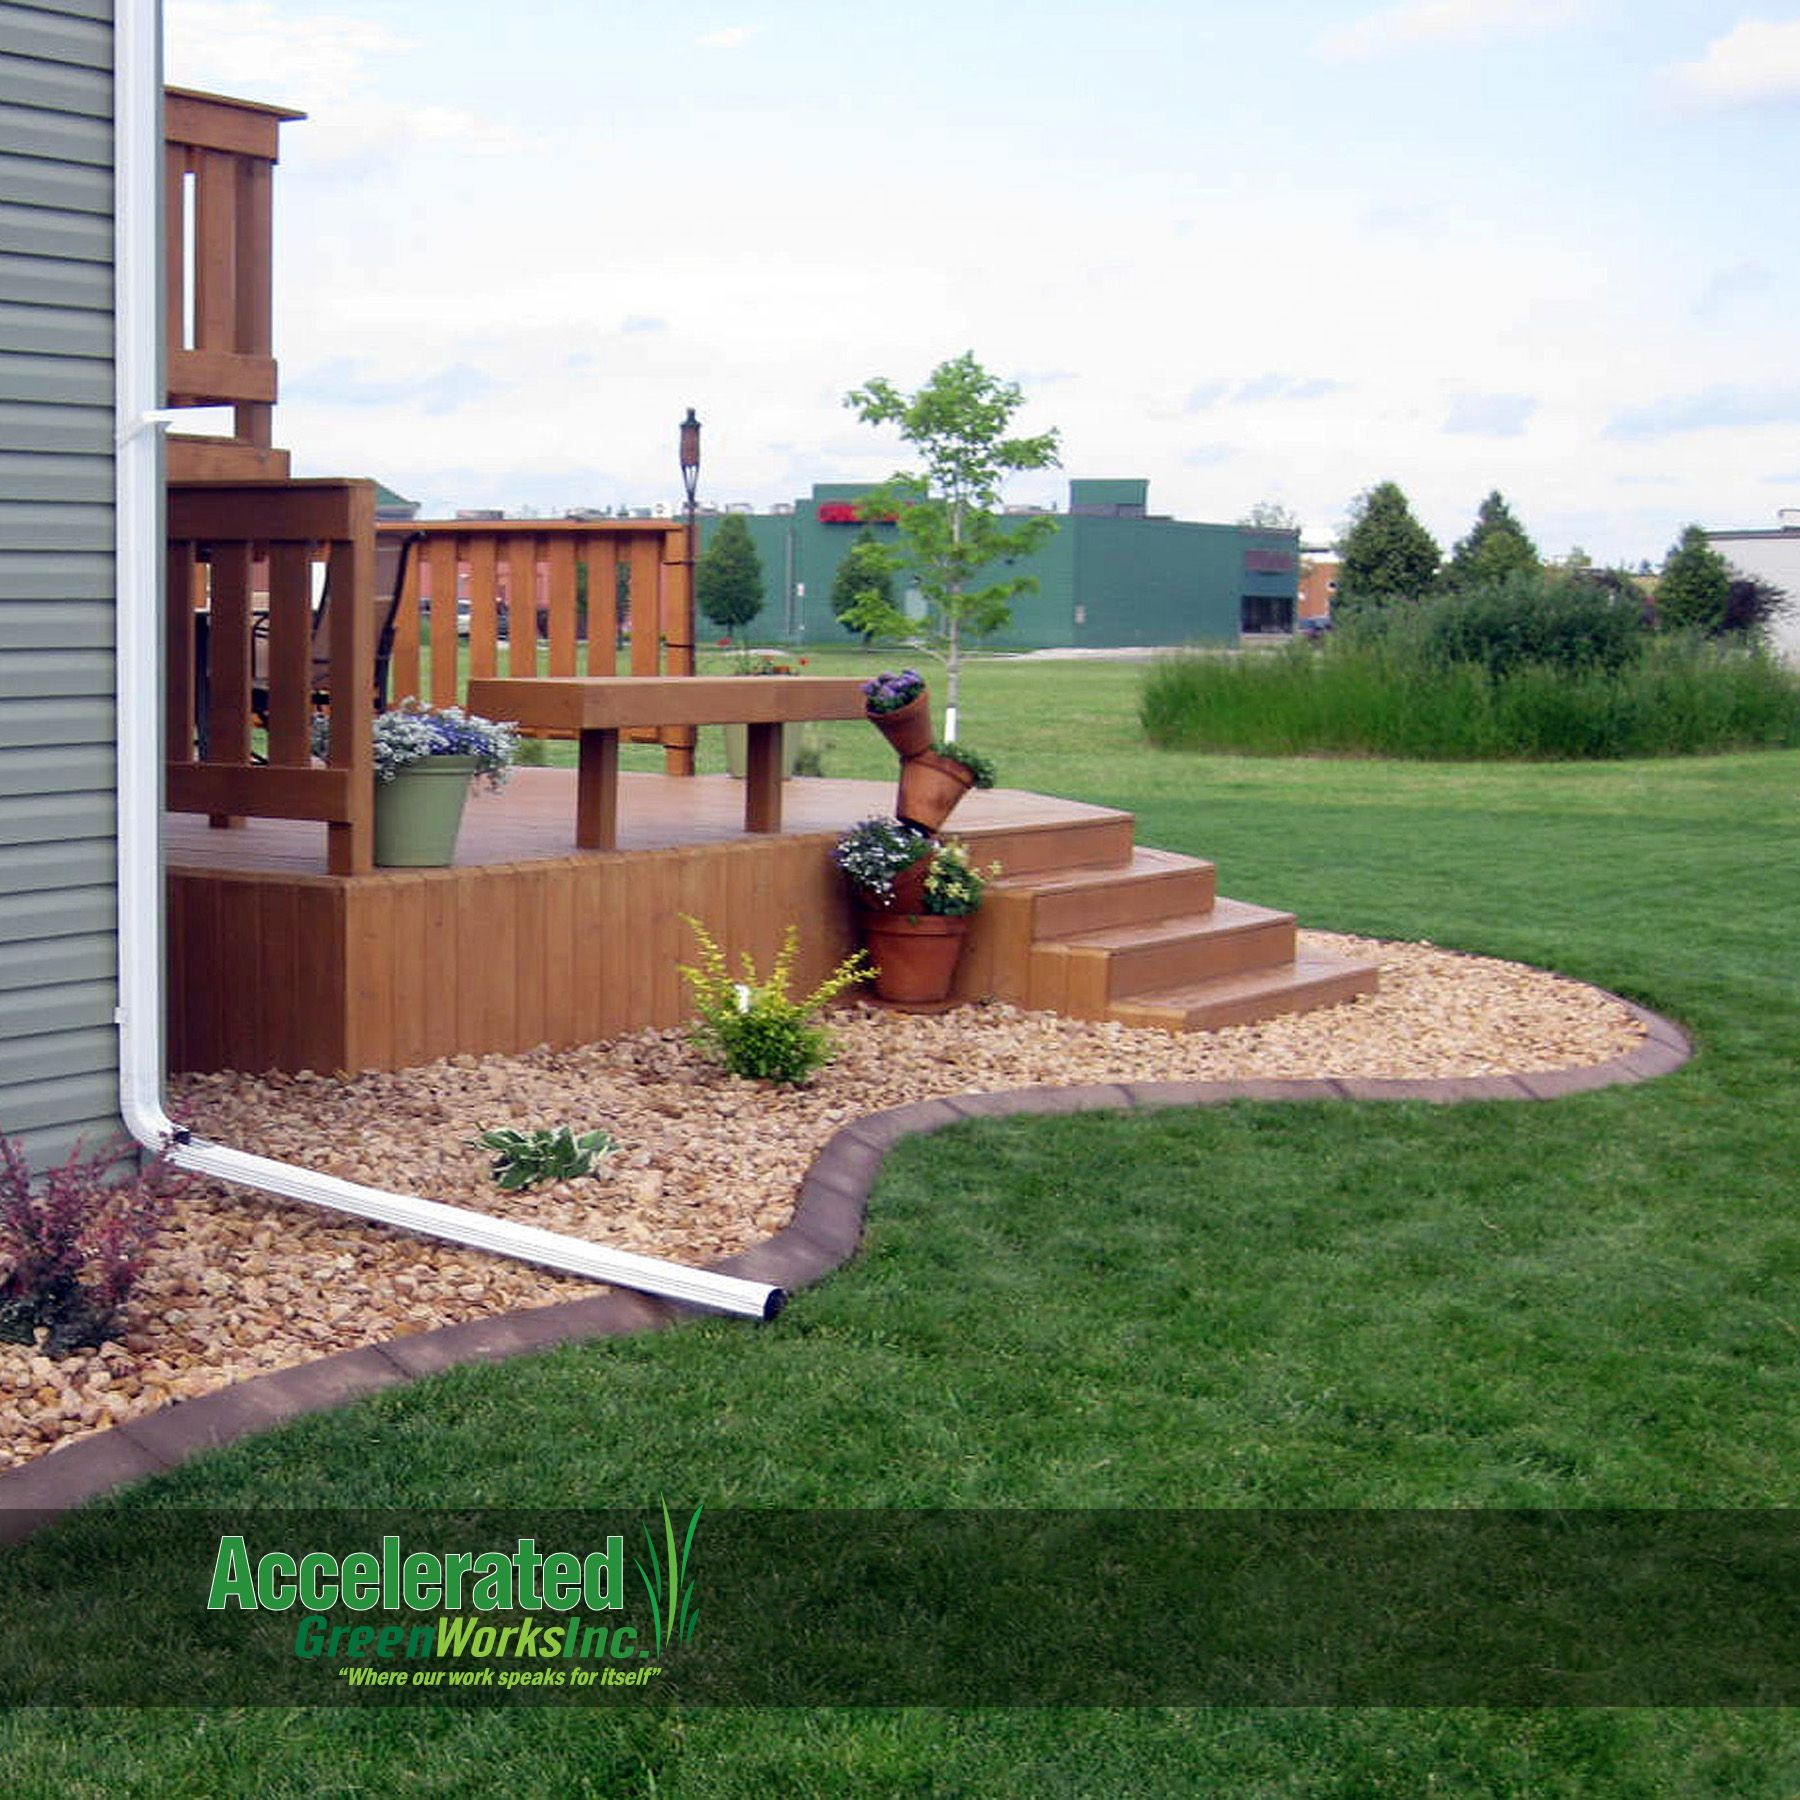 Concrete Curb Edging Blends An Existing Lawn With A Deck